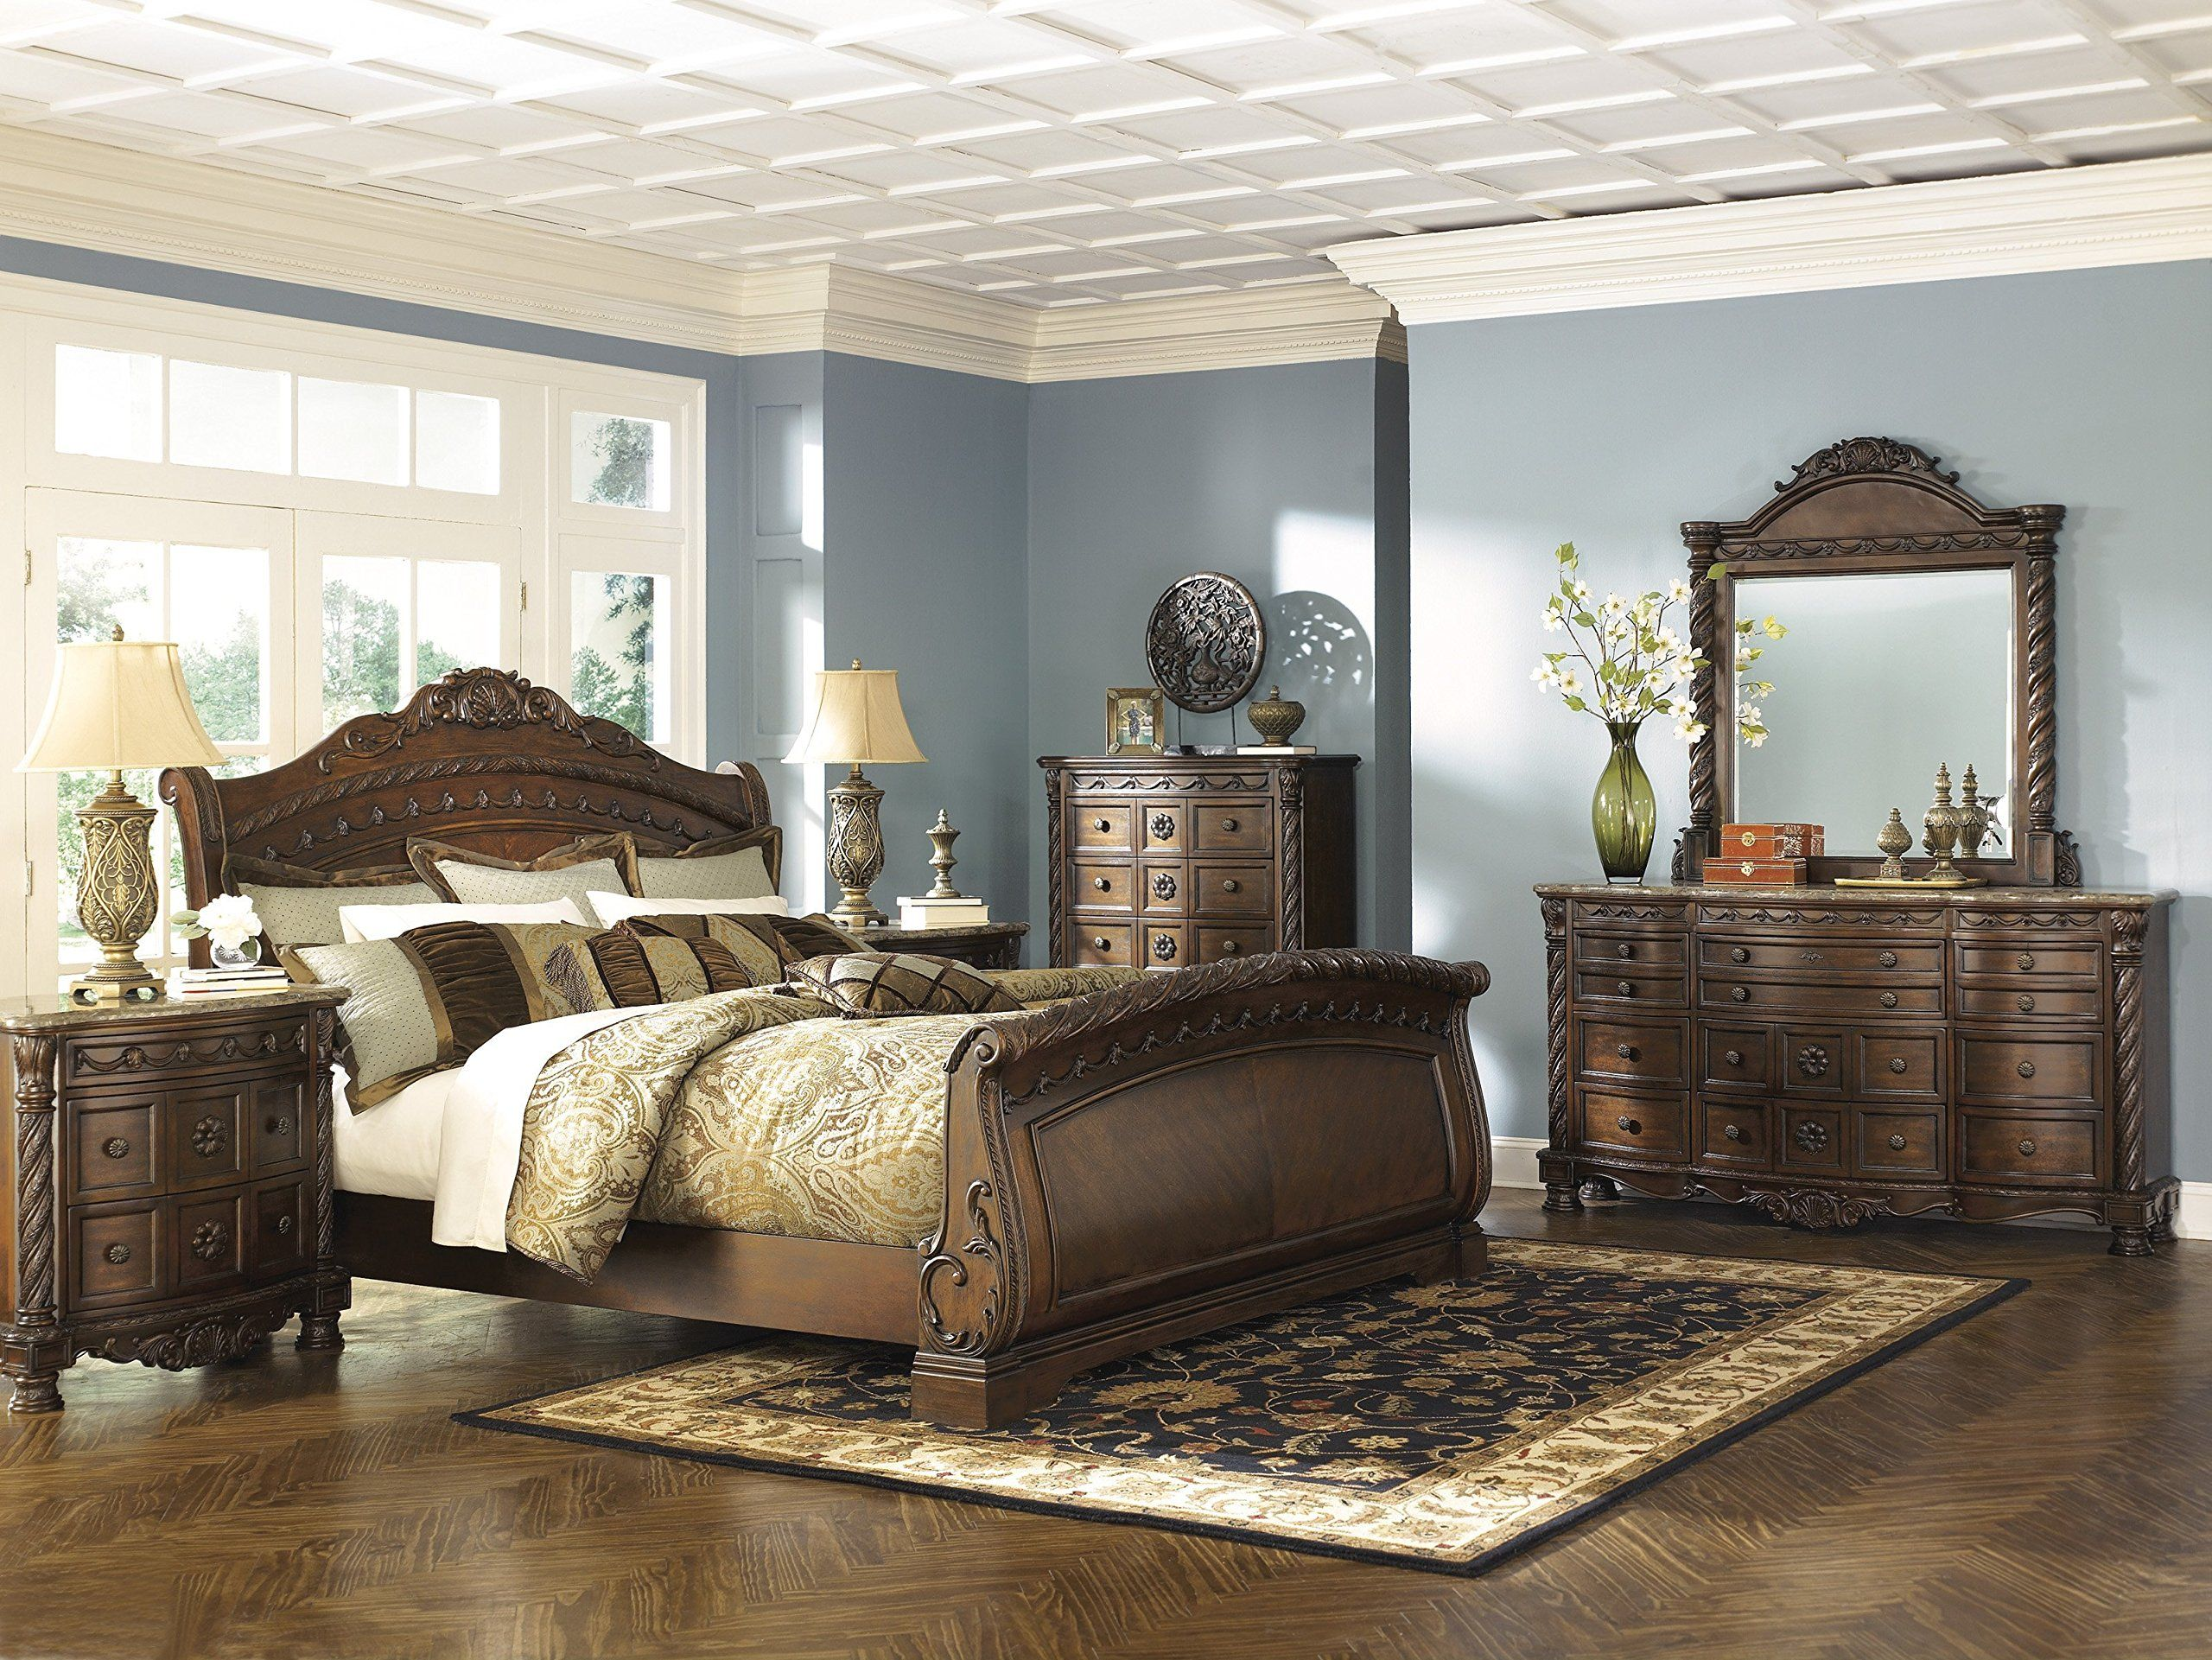 ashley north shore 5pc bedroom set e king sleigh bed dresser mirror